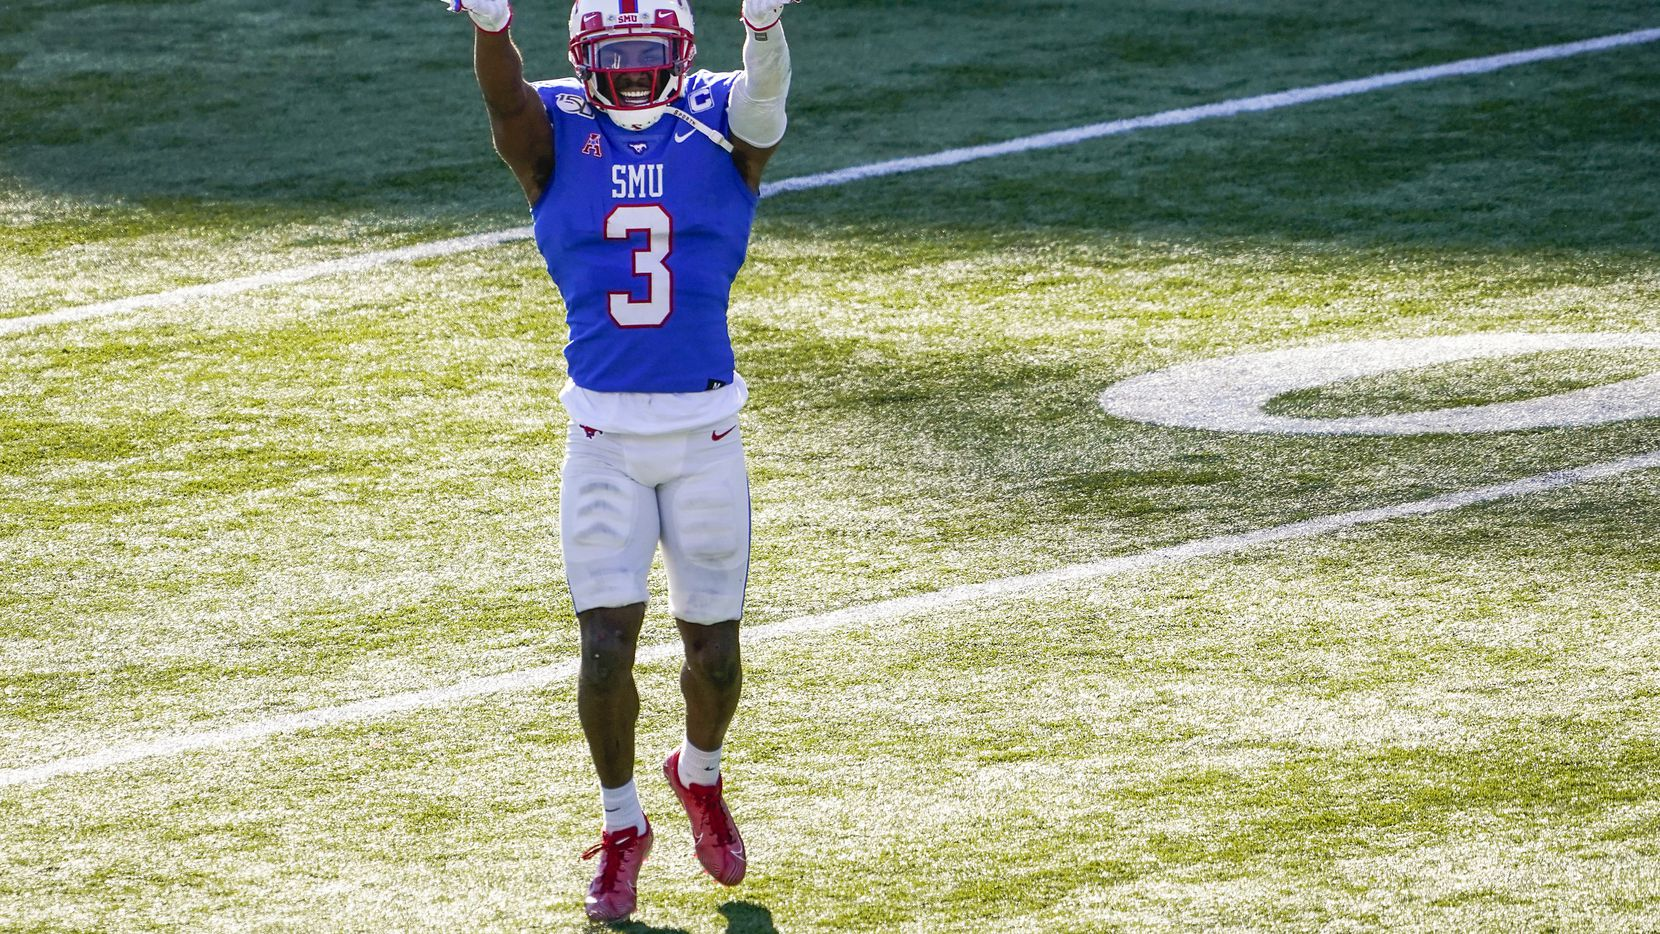 FILE - SMU wide receiver James Proche celebrates a touchdown catch by receiver Myron Gailliard during the first half of a game against Tulane at Ford Stadium on Saturday, Nov. 30, 2019, in Dallas.